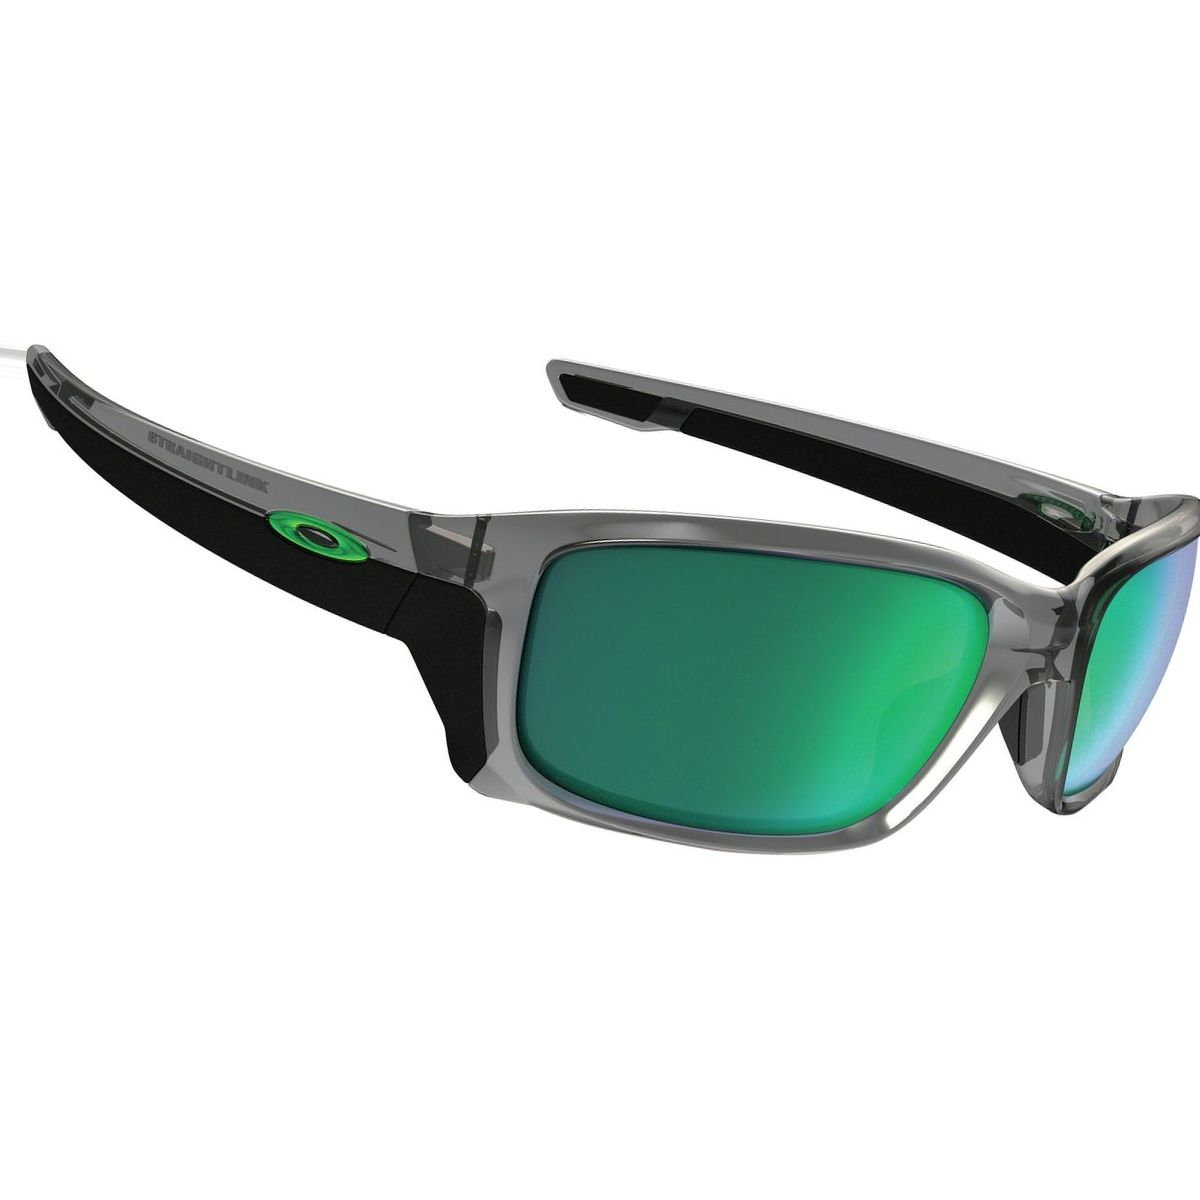 Oakley Straightlink Sunglasses - Men's